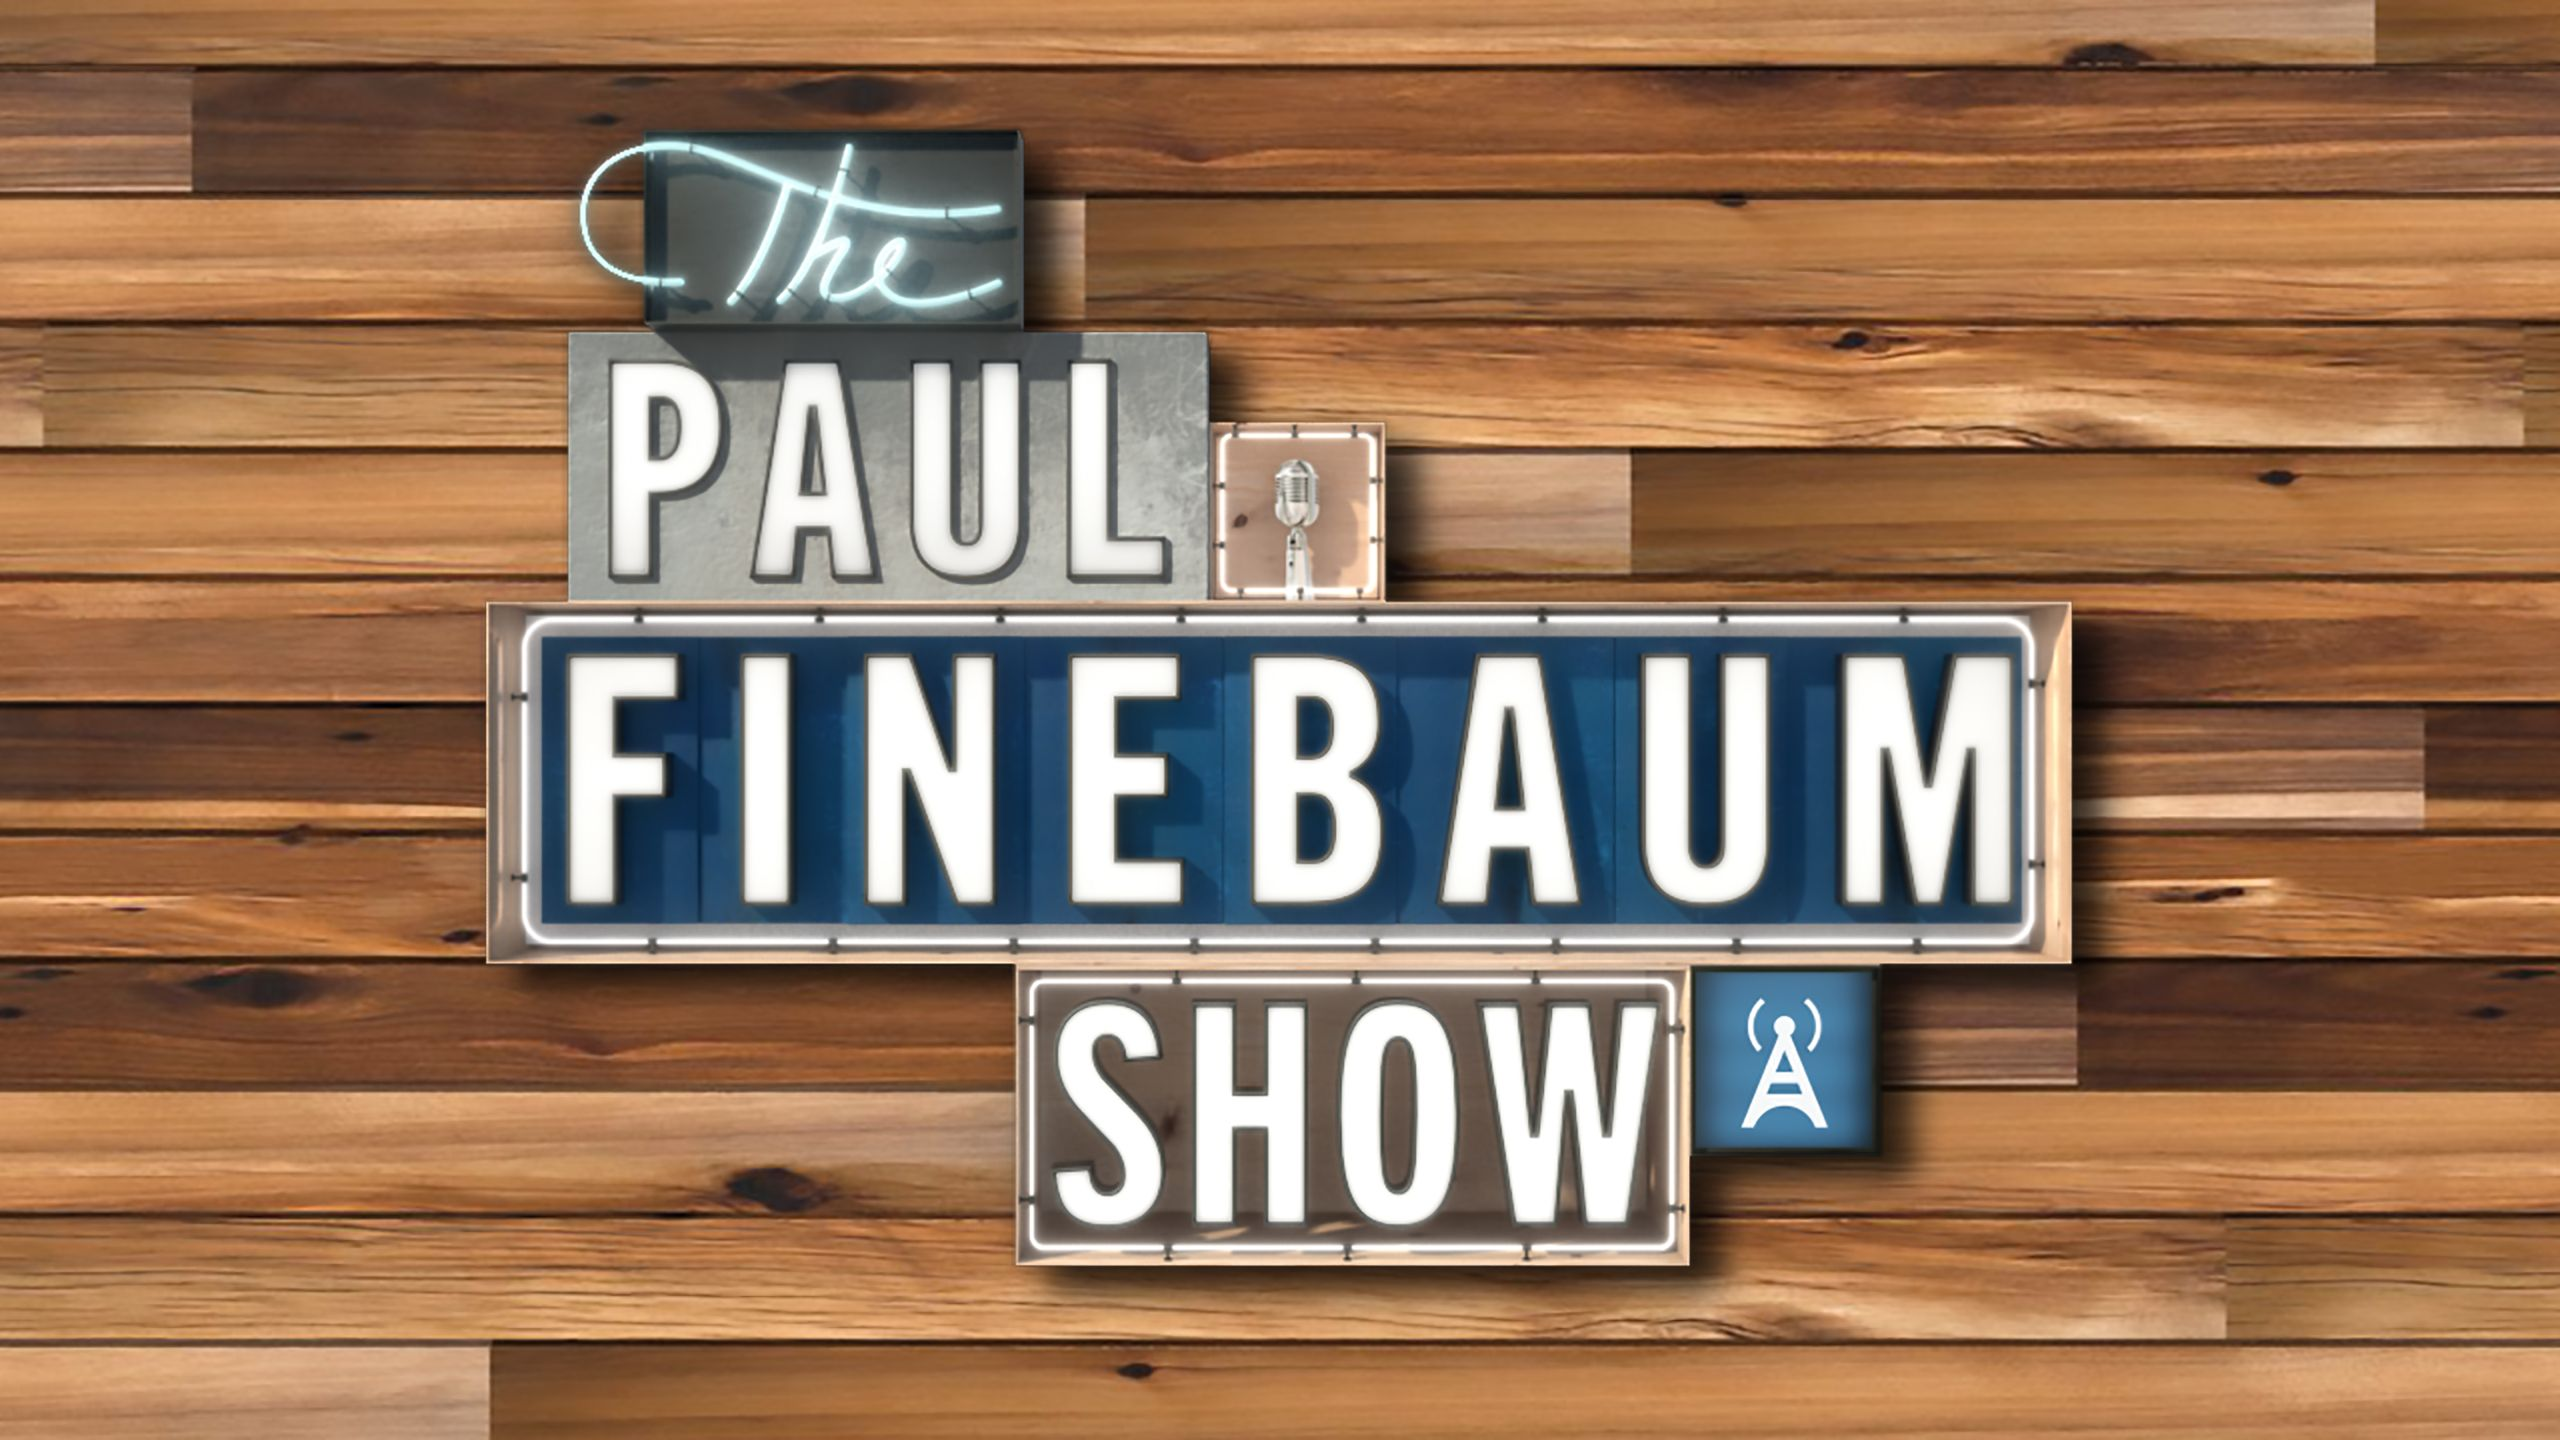 Mon, 10/16 - The Paul Finebaum Show